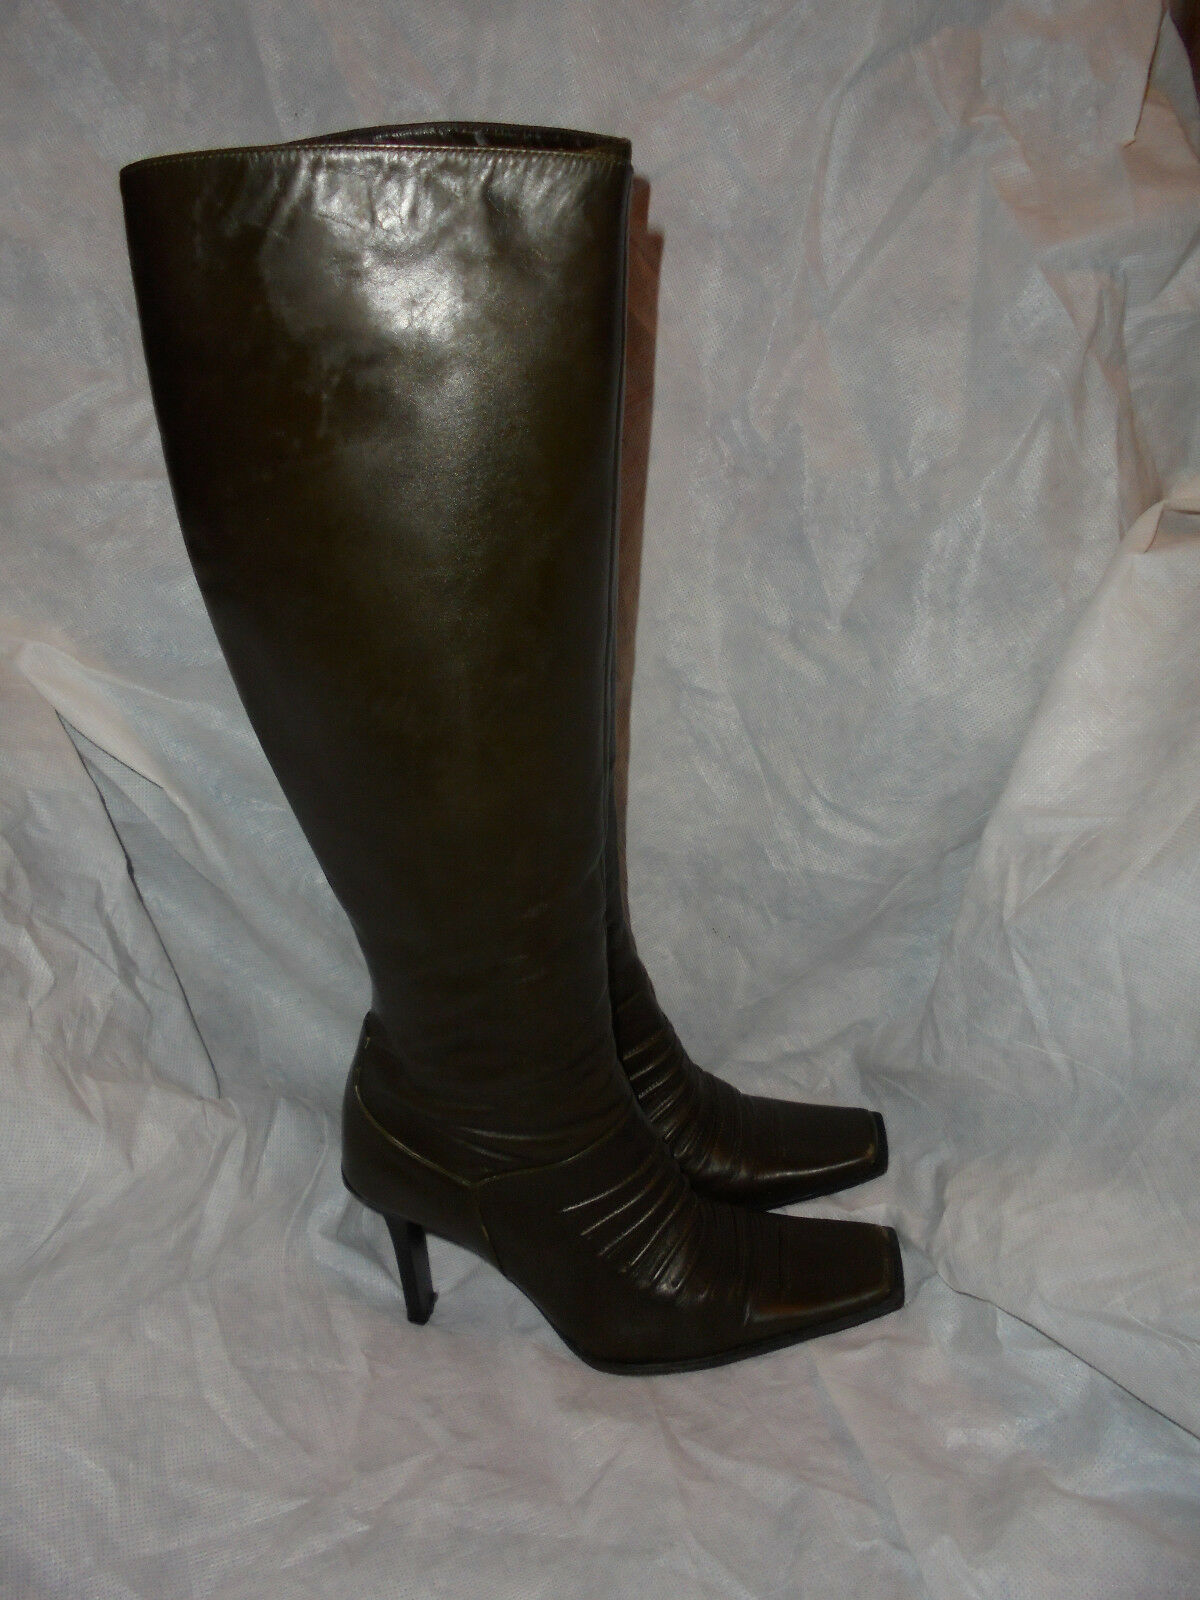 CASADEI WOMEN'S OLIVE LEATHER ZIP UP KNEE HIGH BOOT SIZE UK 4 EU 37 US 7 VGC